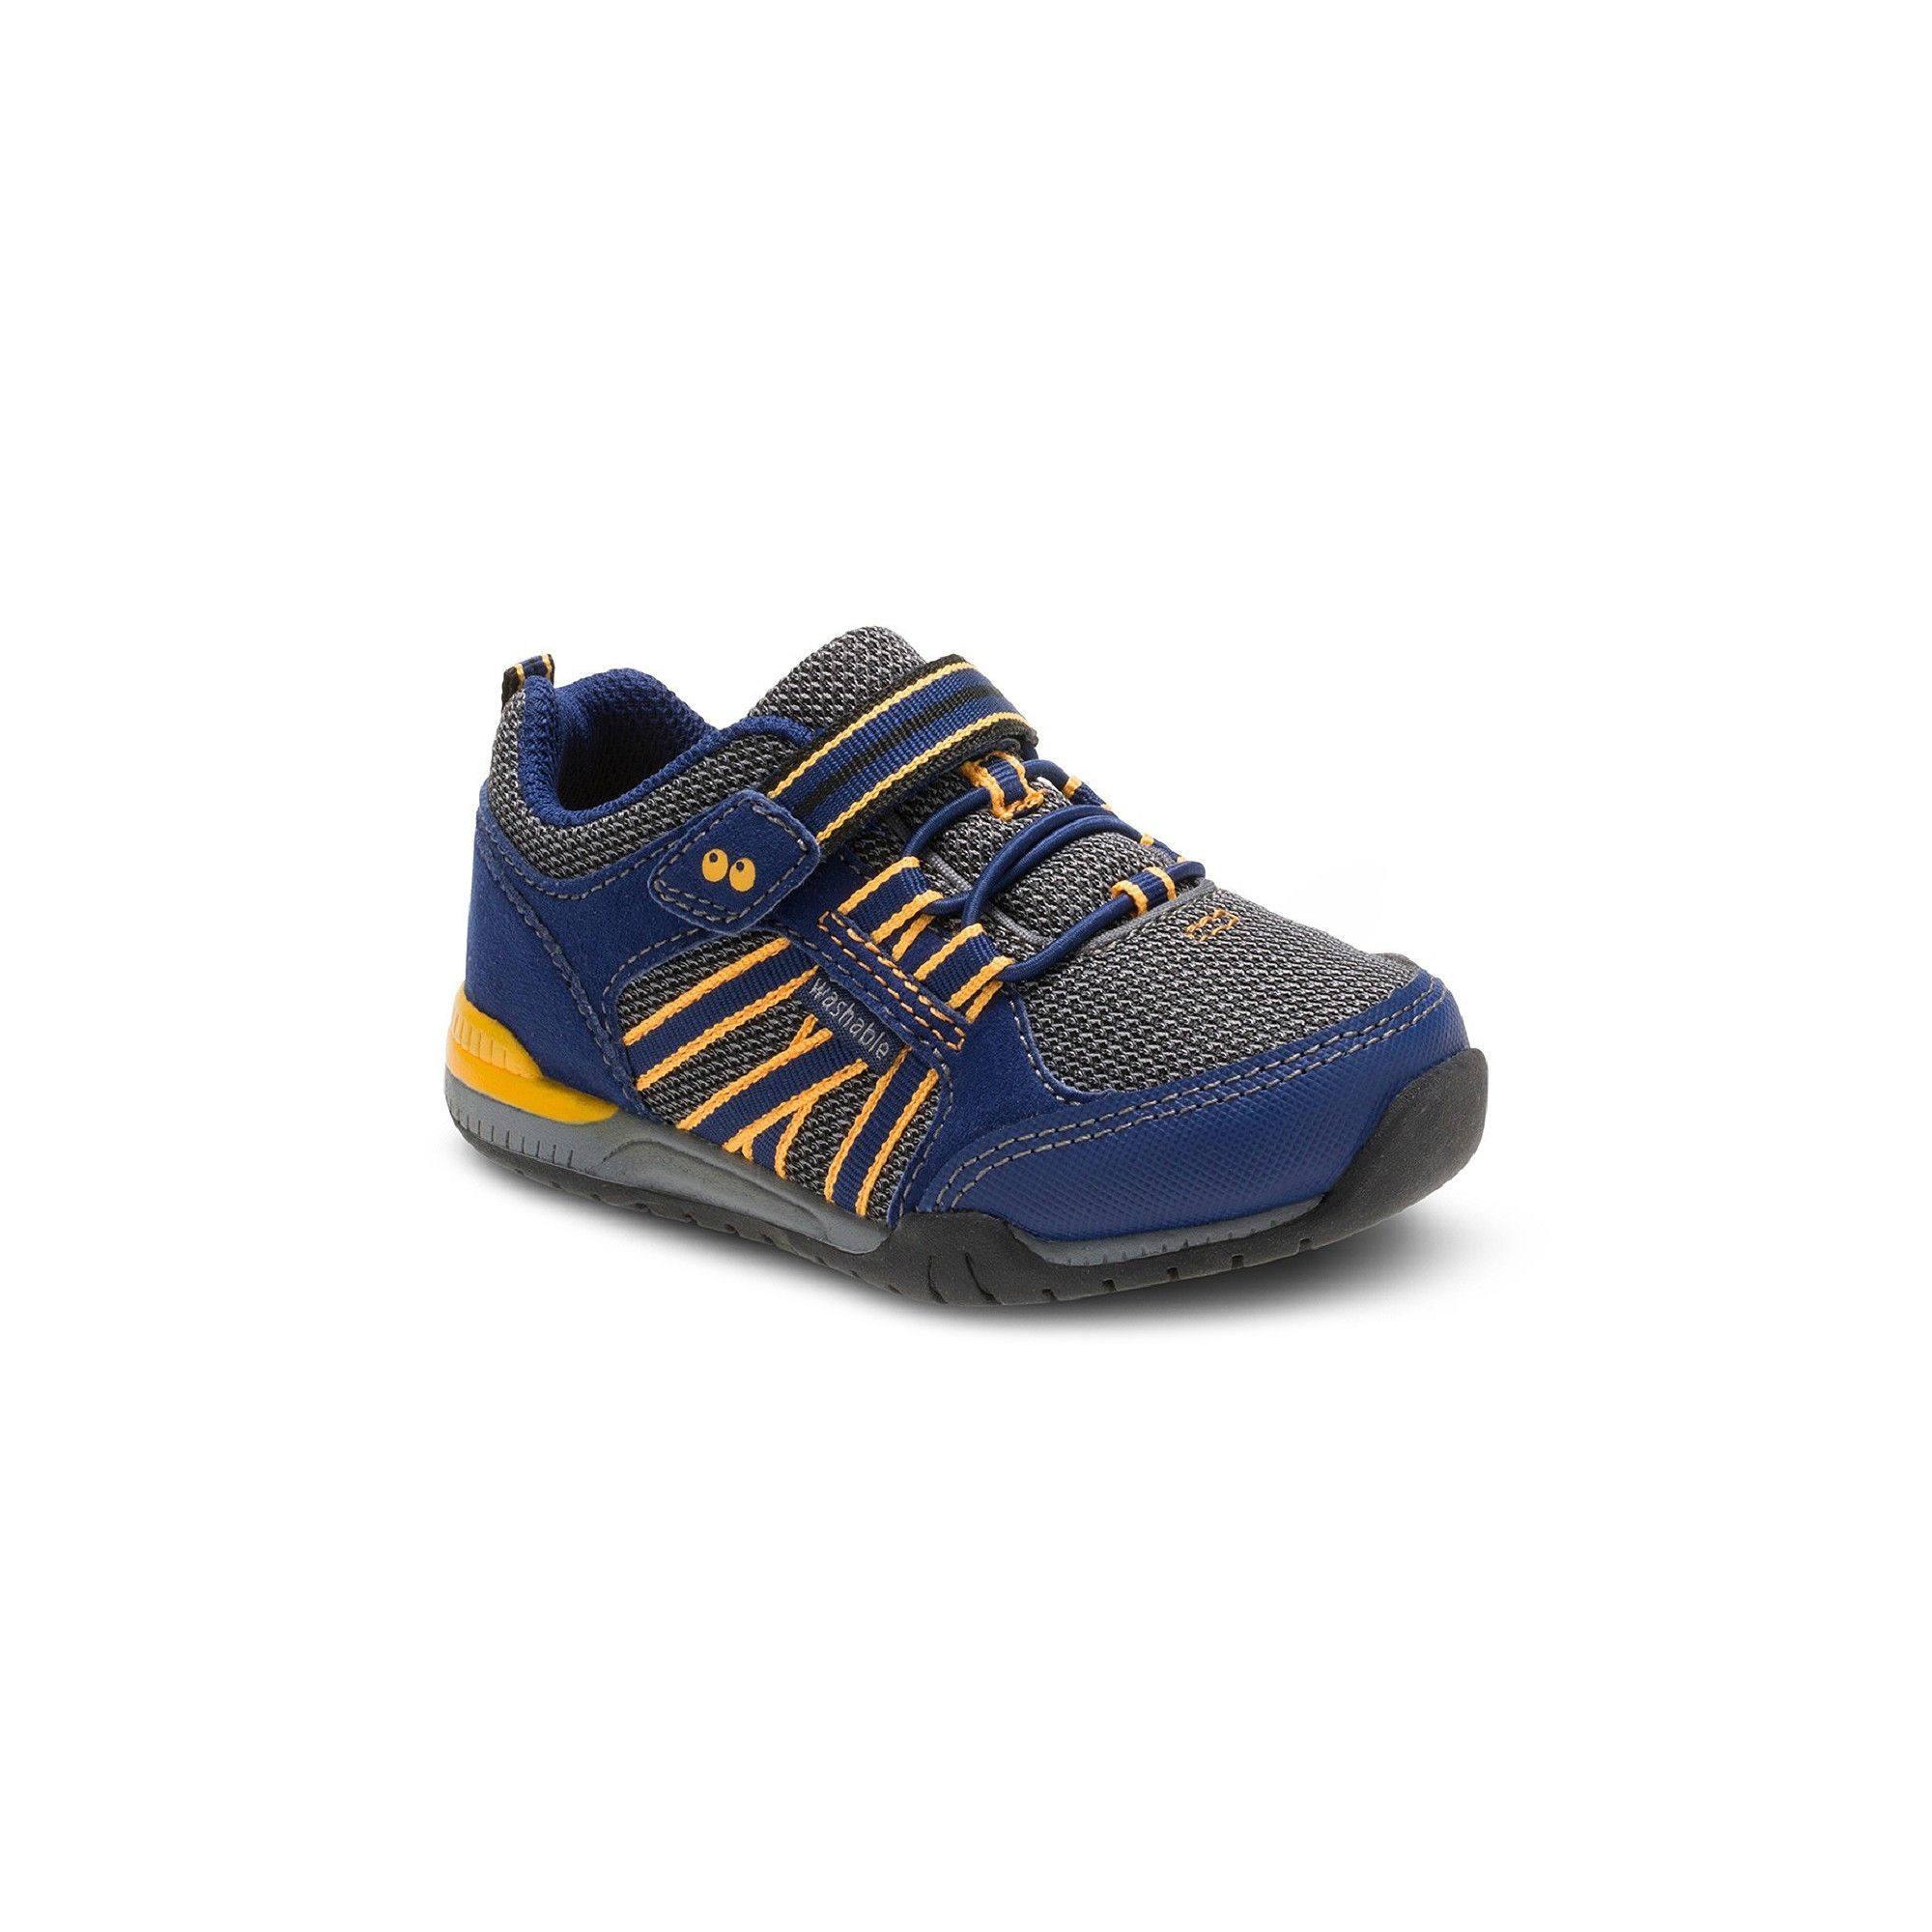 Toddler Boys Surprize by Stride Rite Davon Sneakers Navy Blue